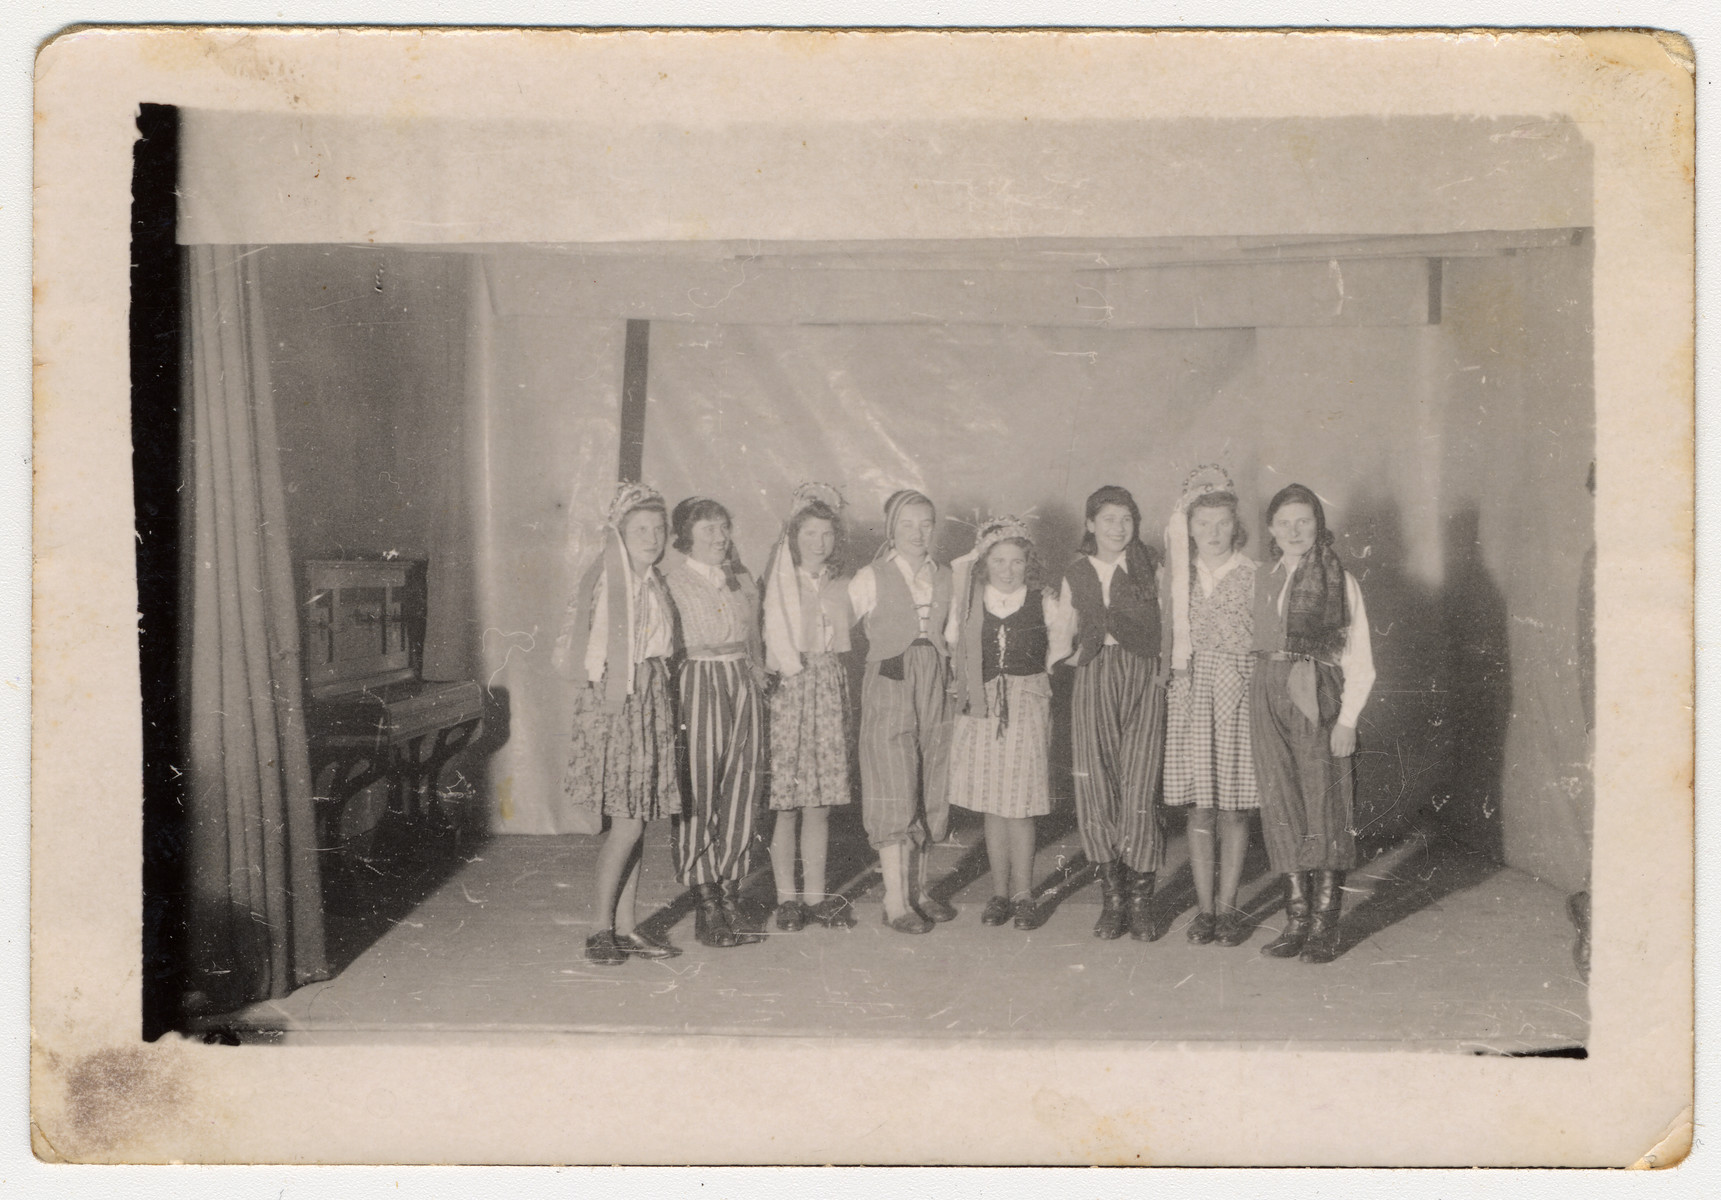 Group portrait of Jewish teenagers in costume during a performance in a children's home in Bielsko Biala.